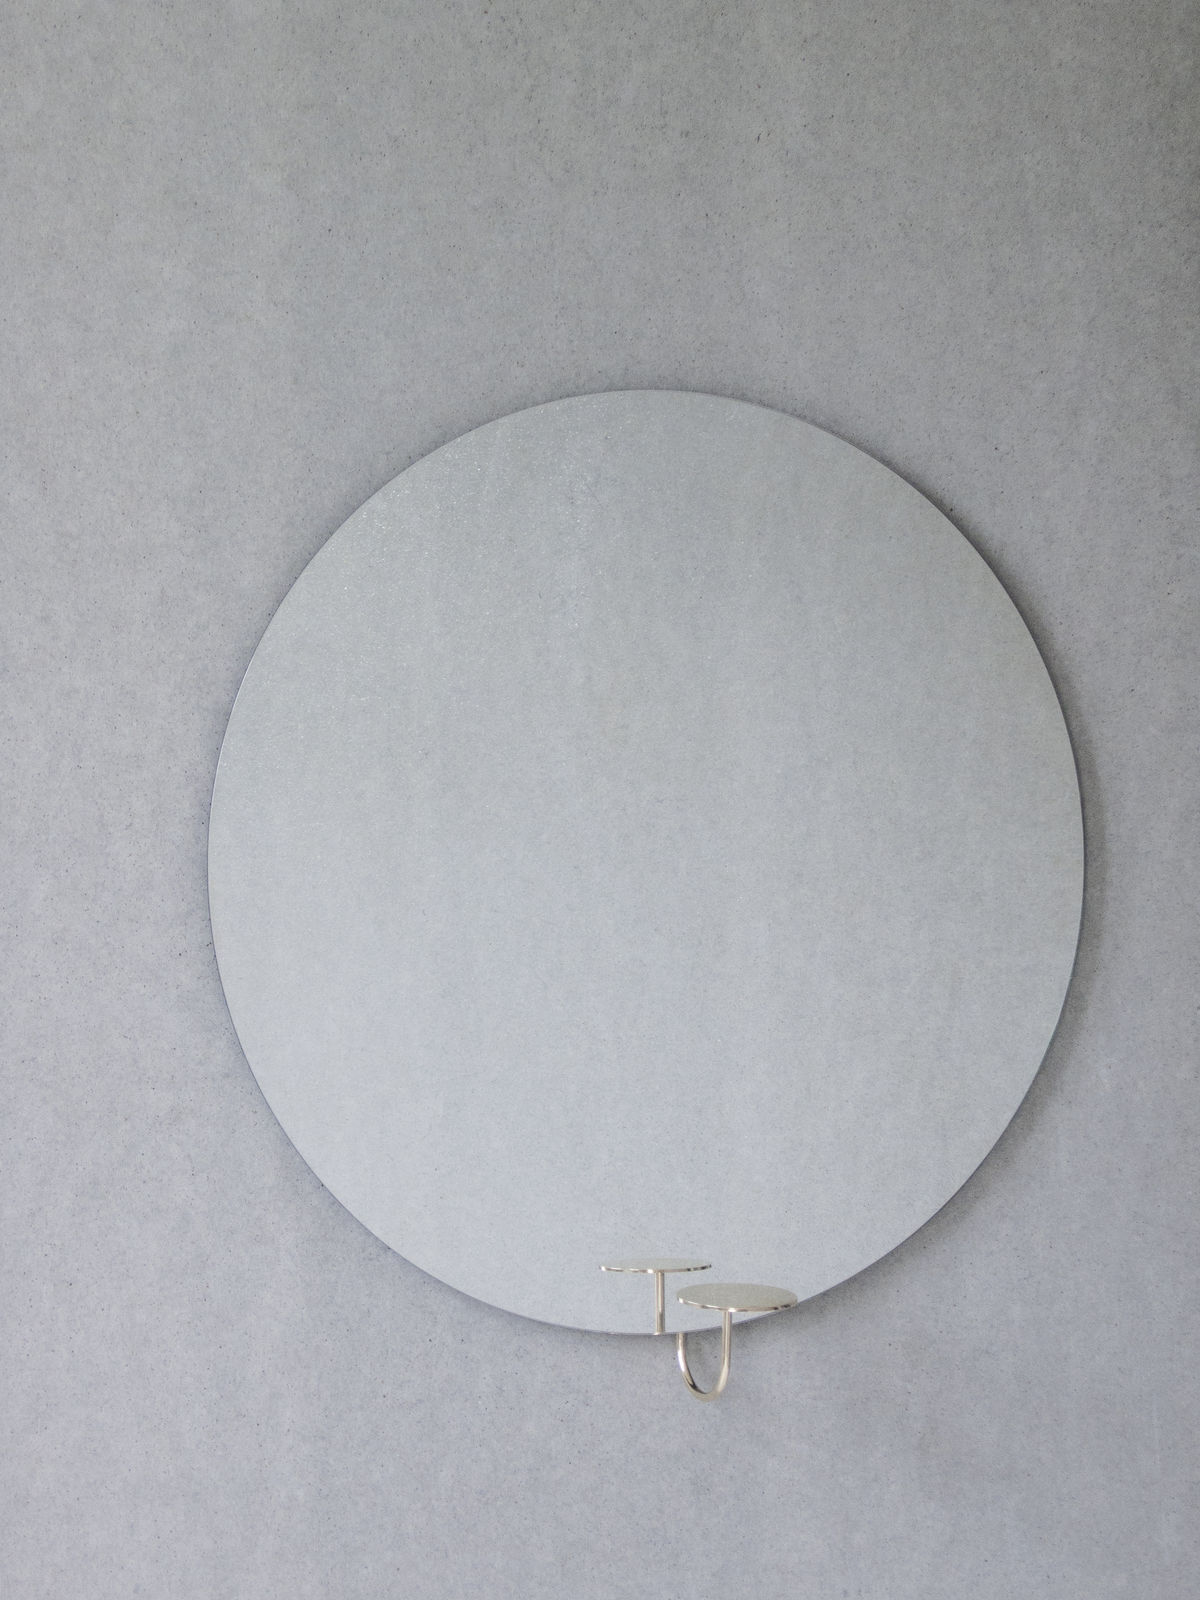 Friends & Founders Miró Miró Mirror - Round/Clear